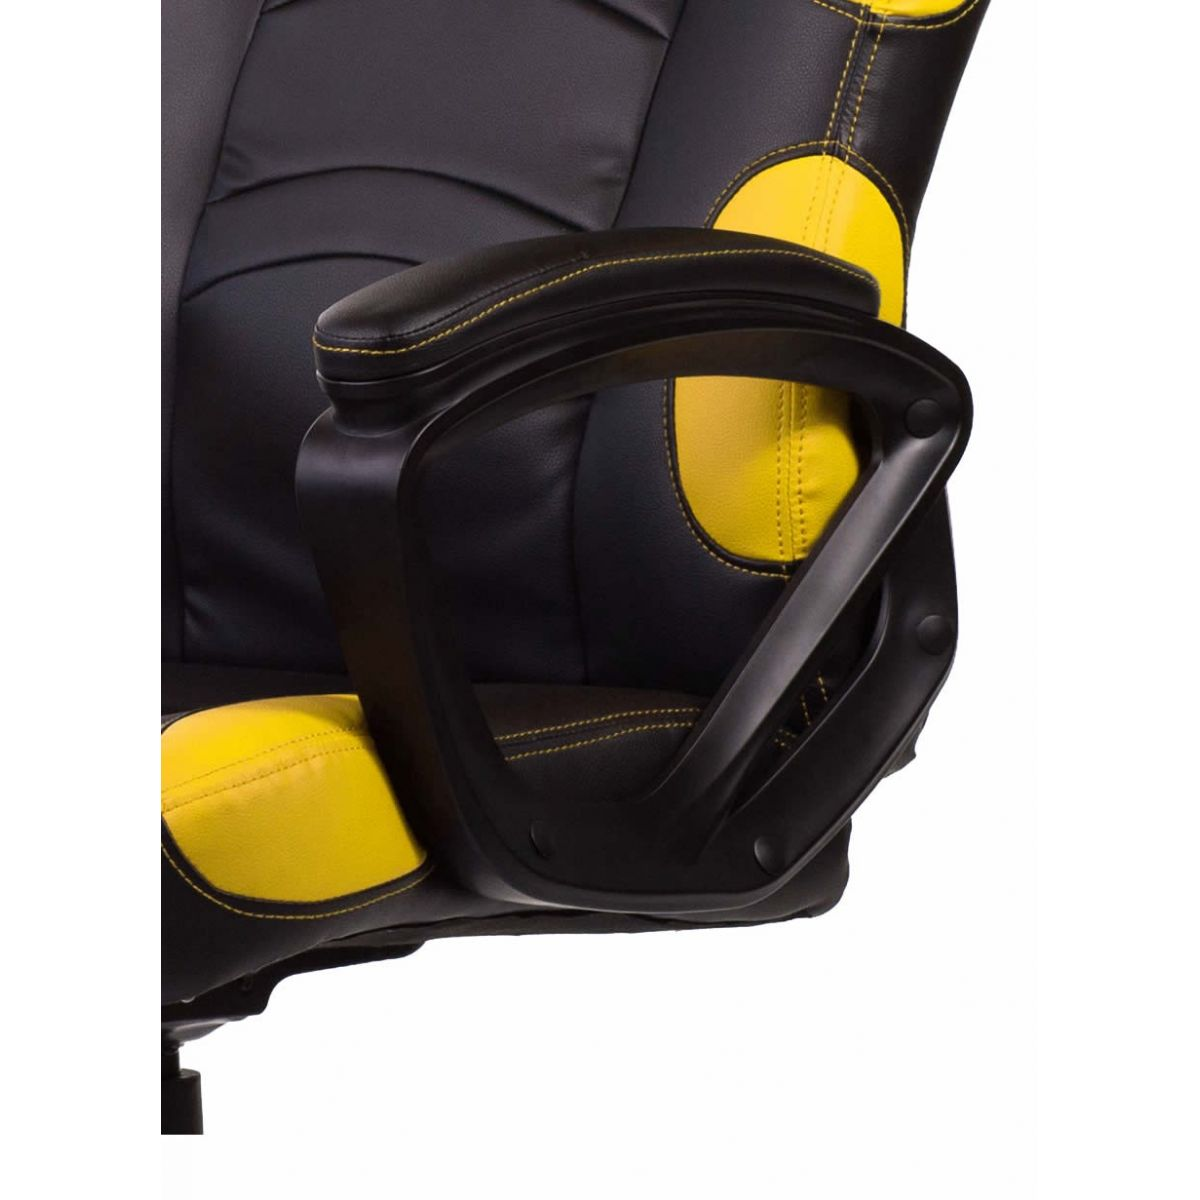 Cadeira Gaming GTX Yellow (10179-8) - DT3 Sports